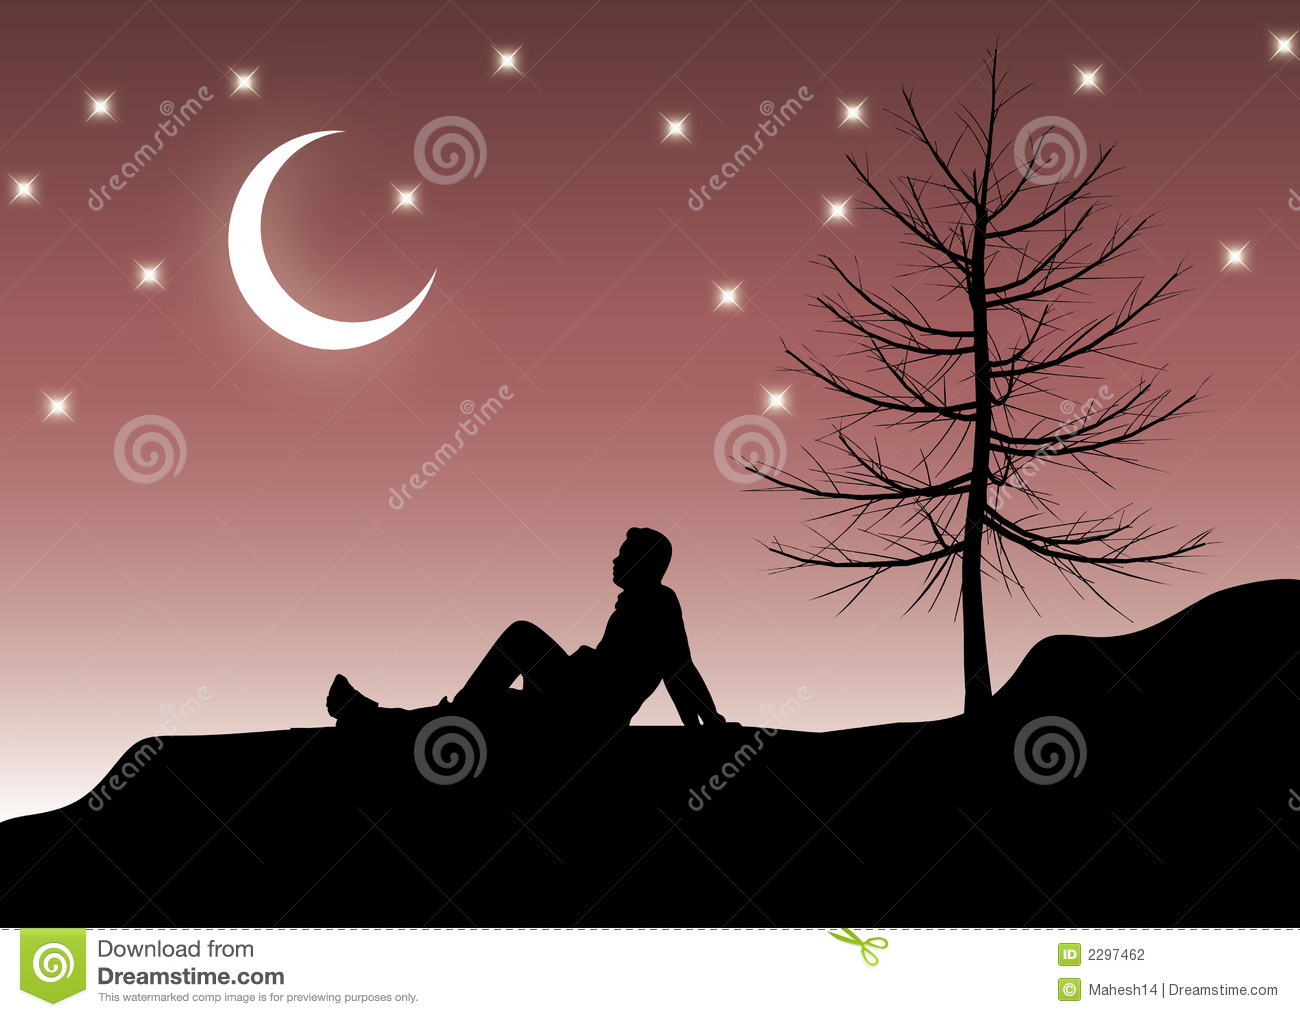 Boy sitting alone night stock illustrations 40 boy sitting alone night stock illustrations vectors clipart dreamstime